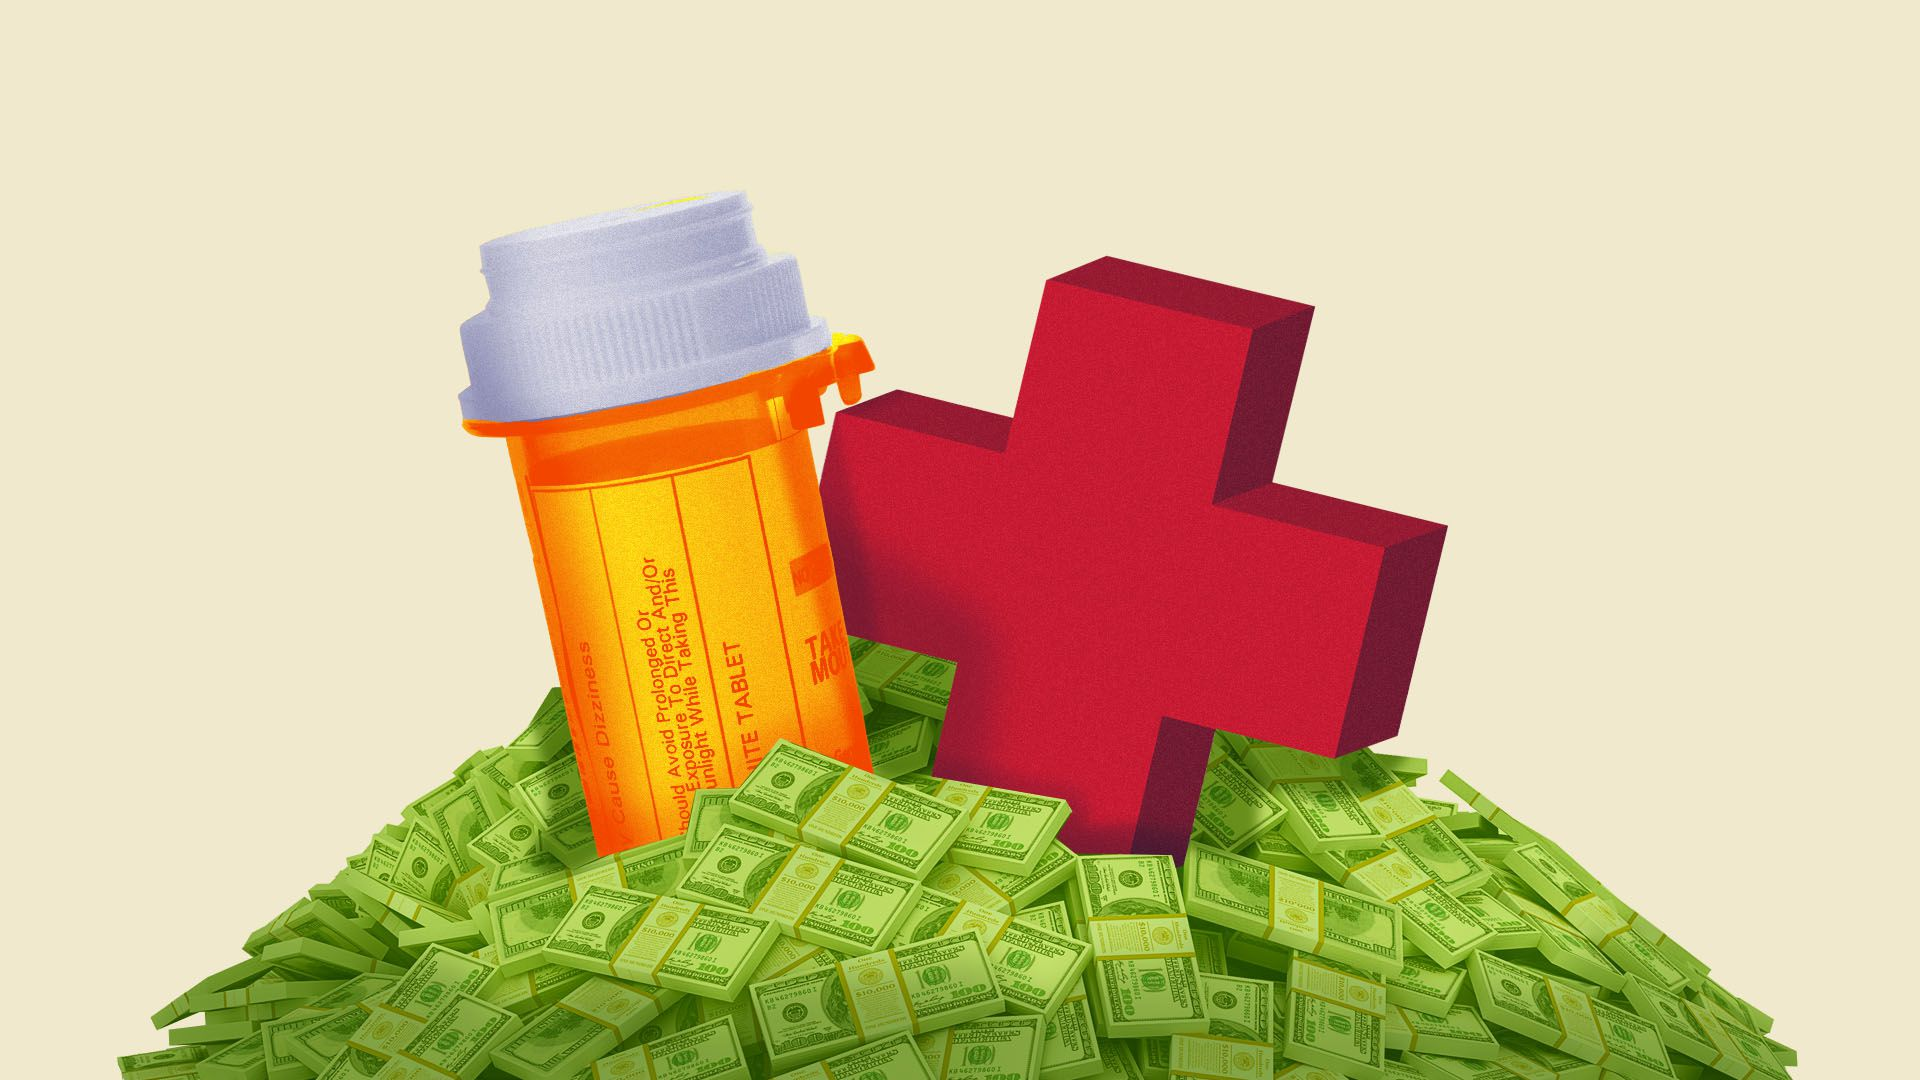 Illustration of a red cross and a pill bottle in a pile of money.